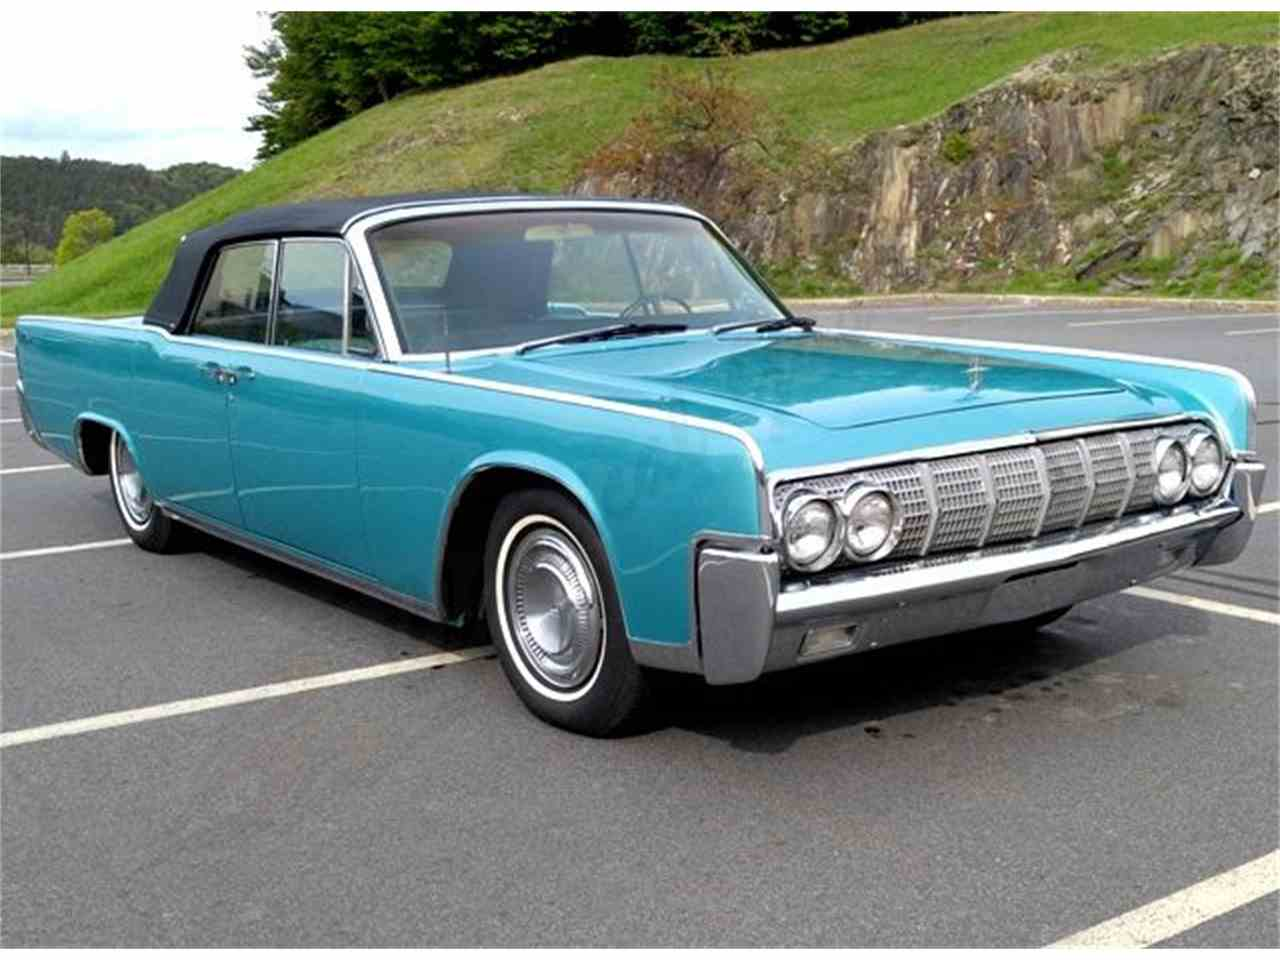 1964 lincoln continental images galleries with a bite. Black Bedroom Furniture Sets. Home Design Ideas